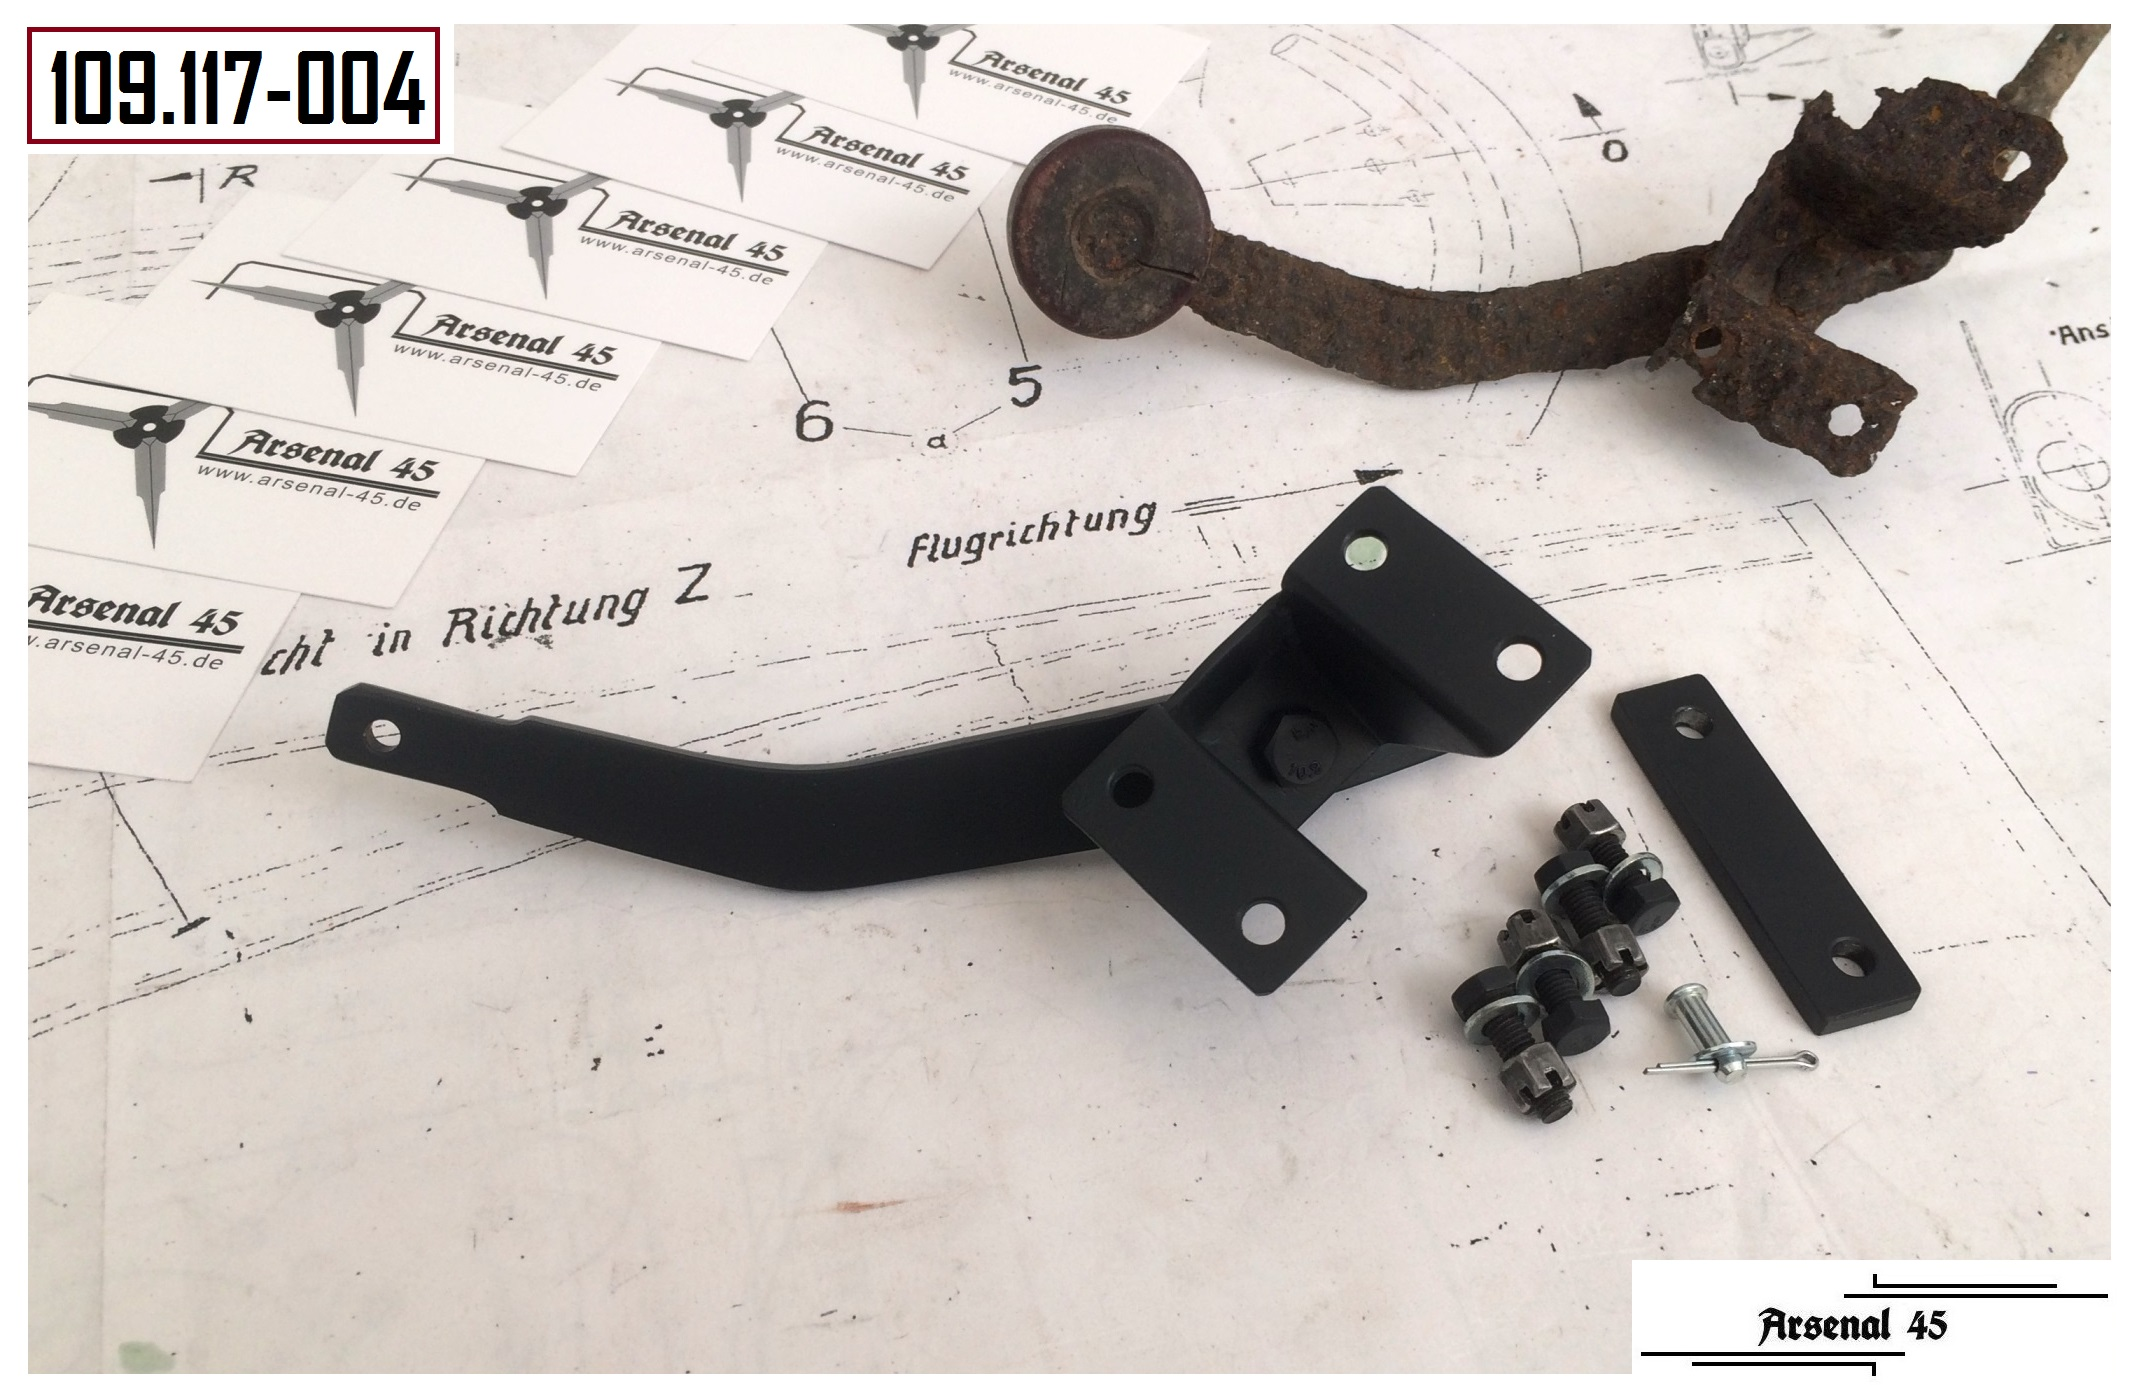 +++ canopy emergency release lever - Messerschmitt Bf109 G (early) ++ & Arsenal45